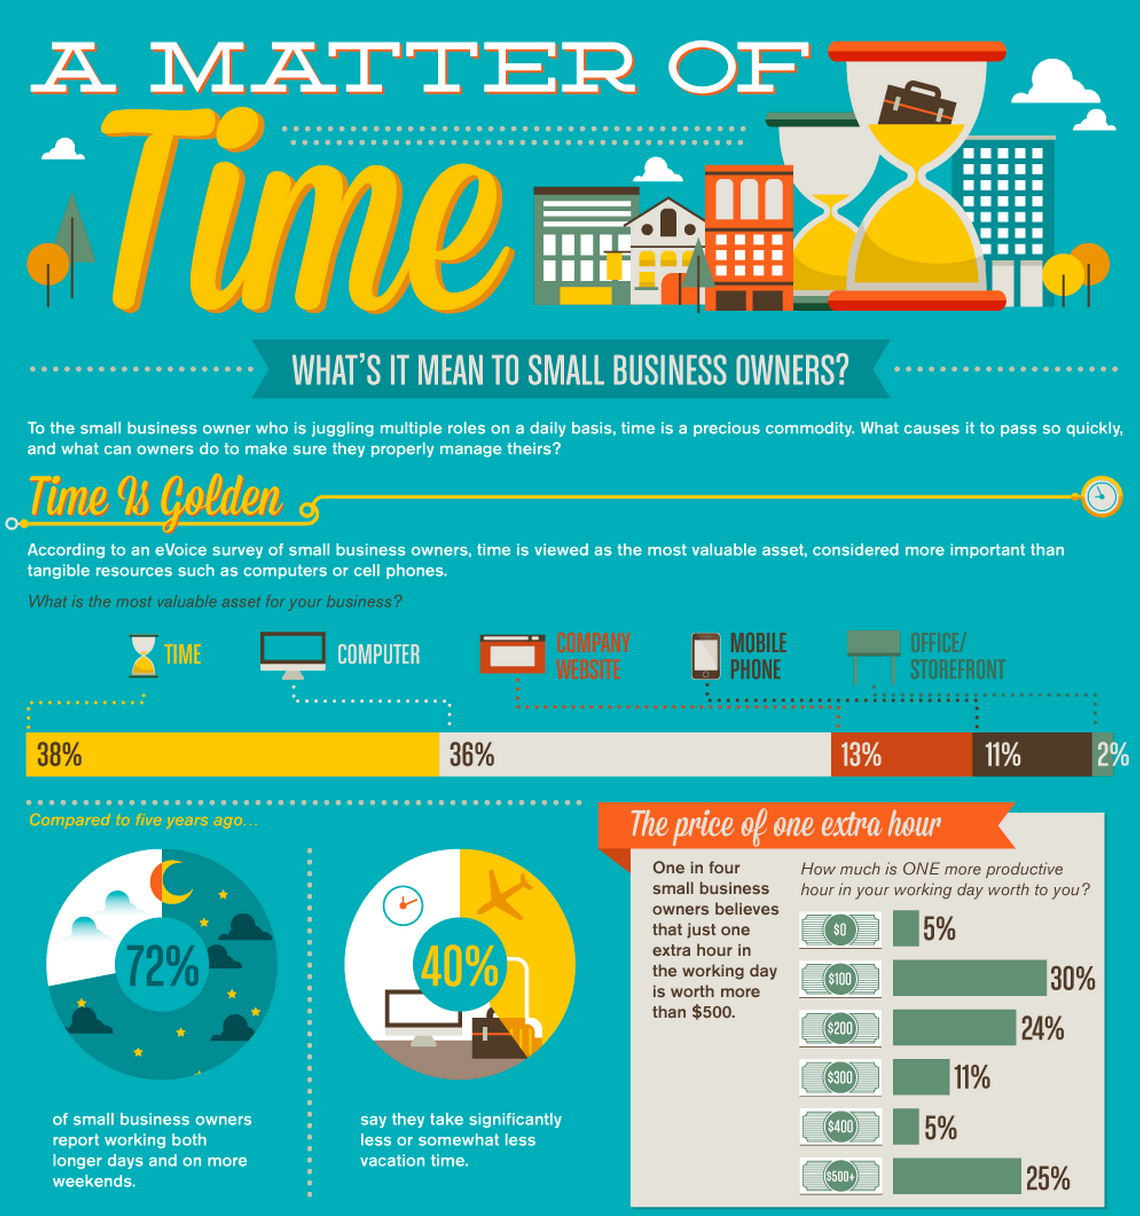 What Does Time Mean to Small Business Owners?